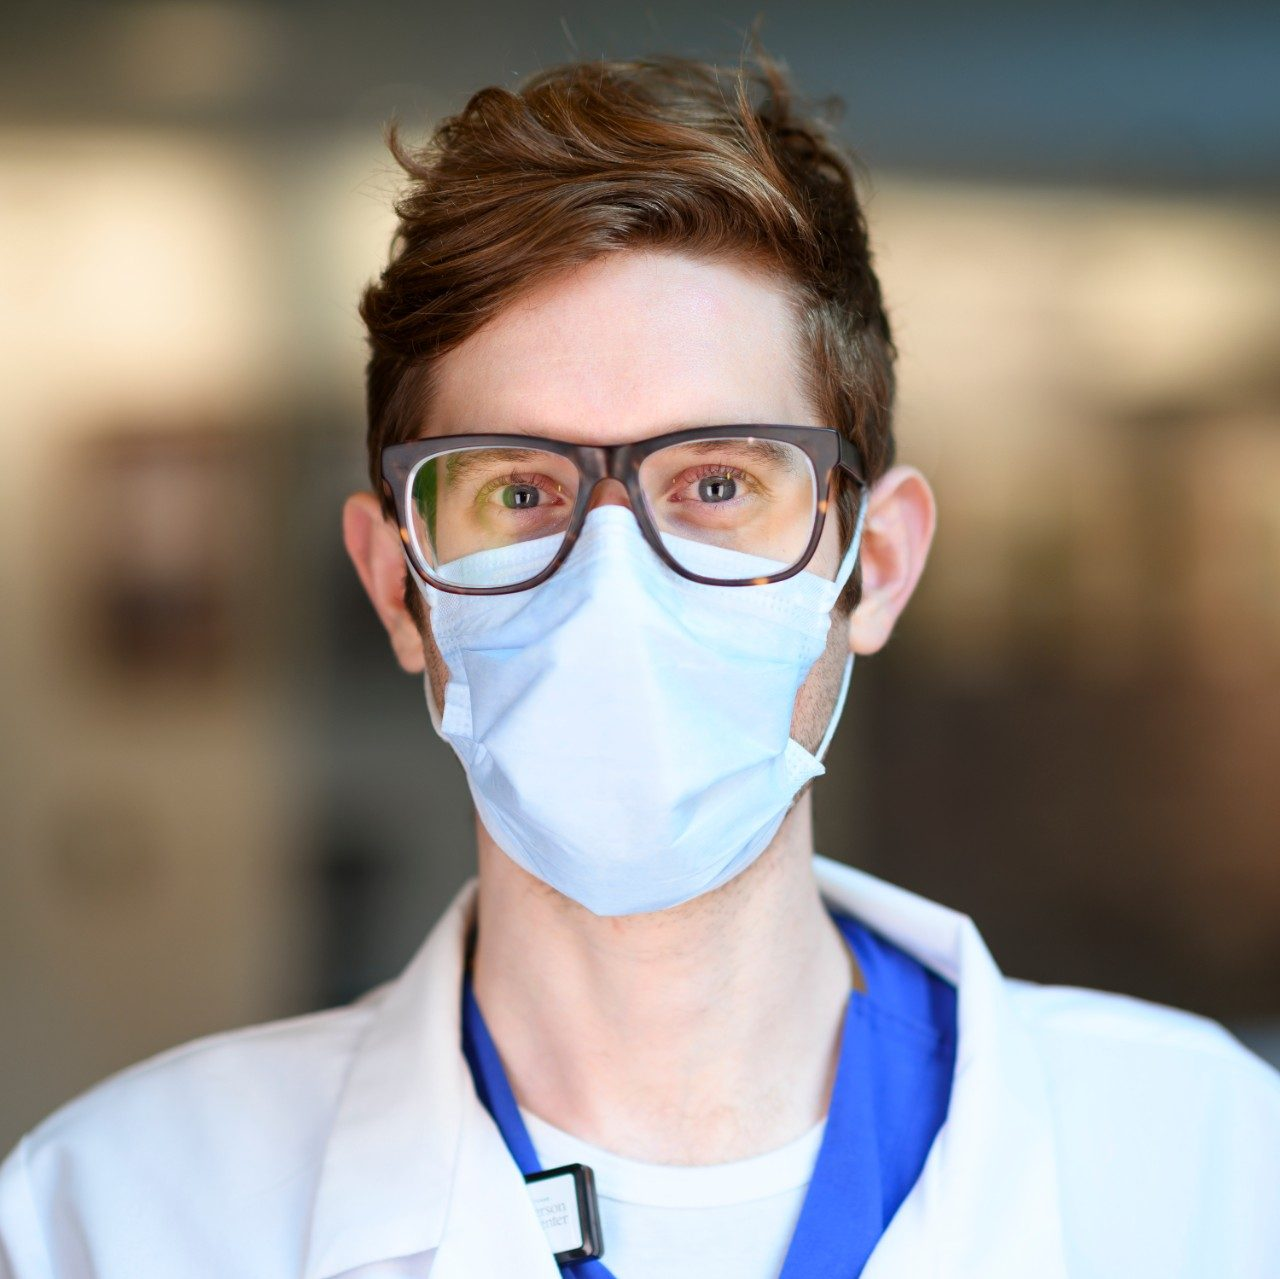 MD Anderson employee wearing face mask